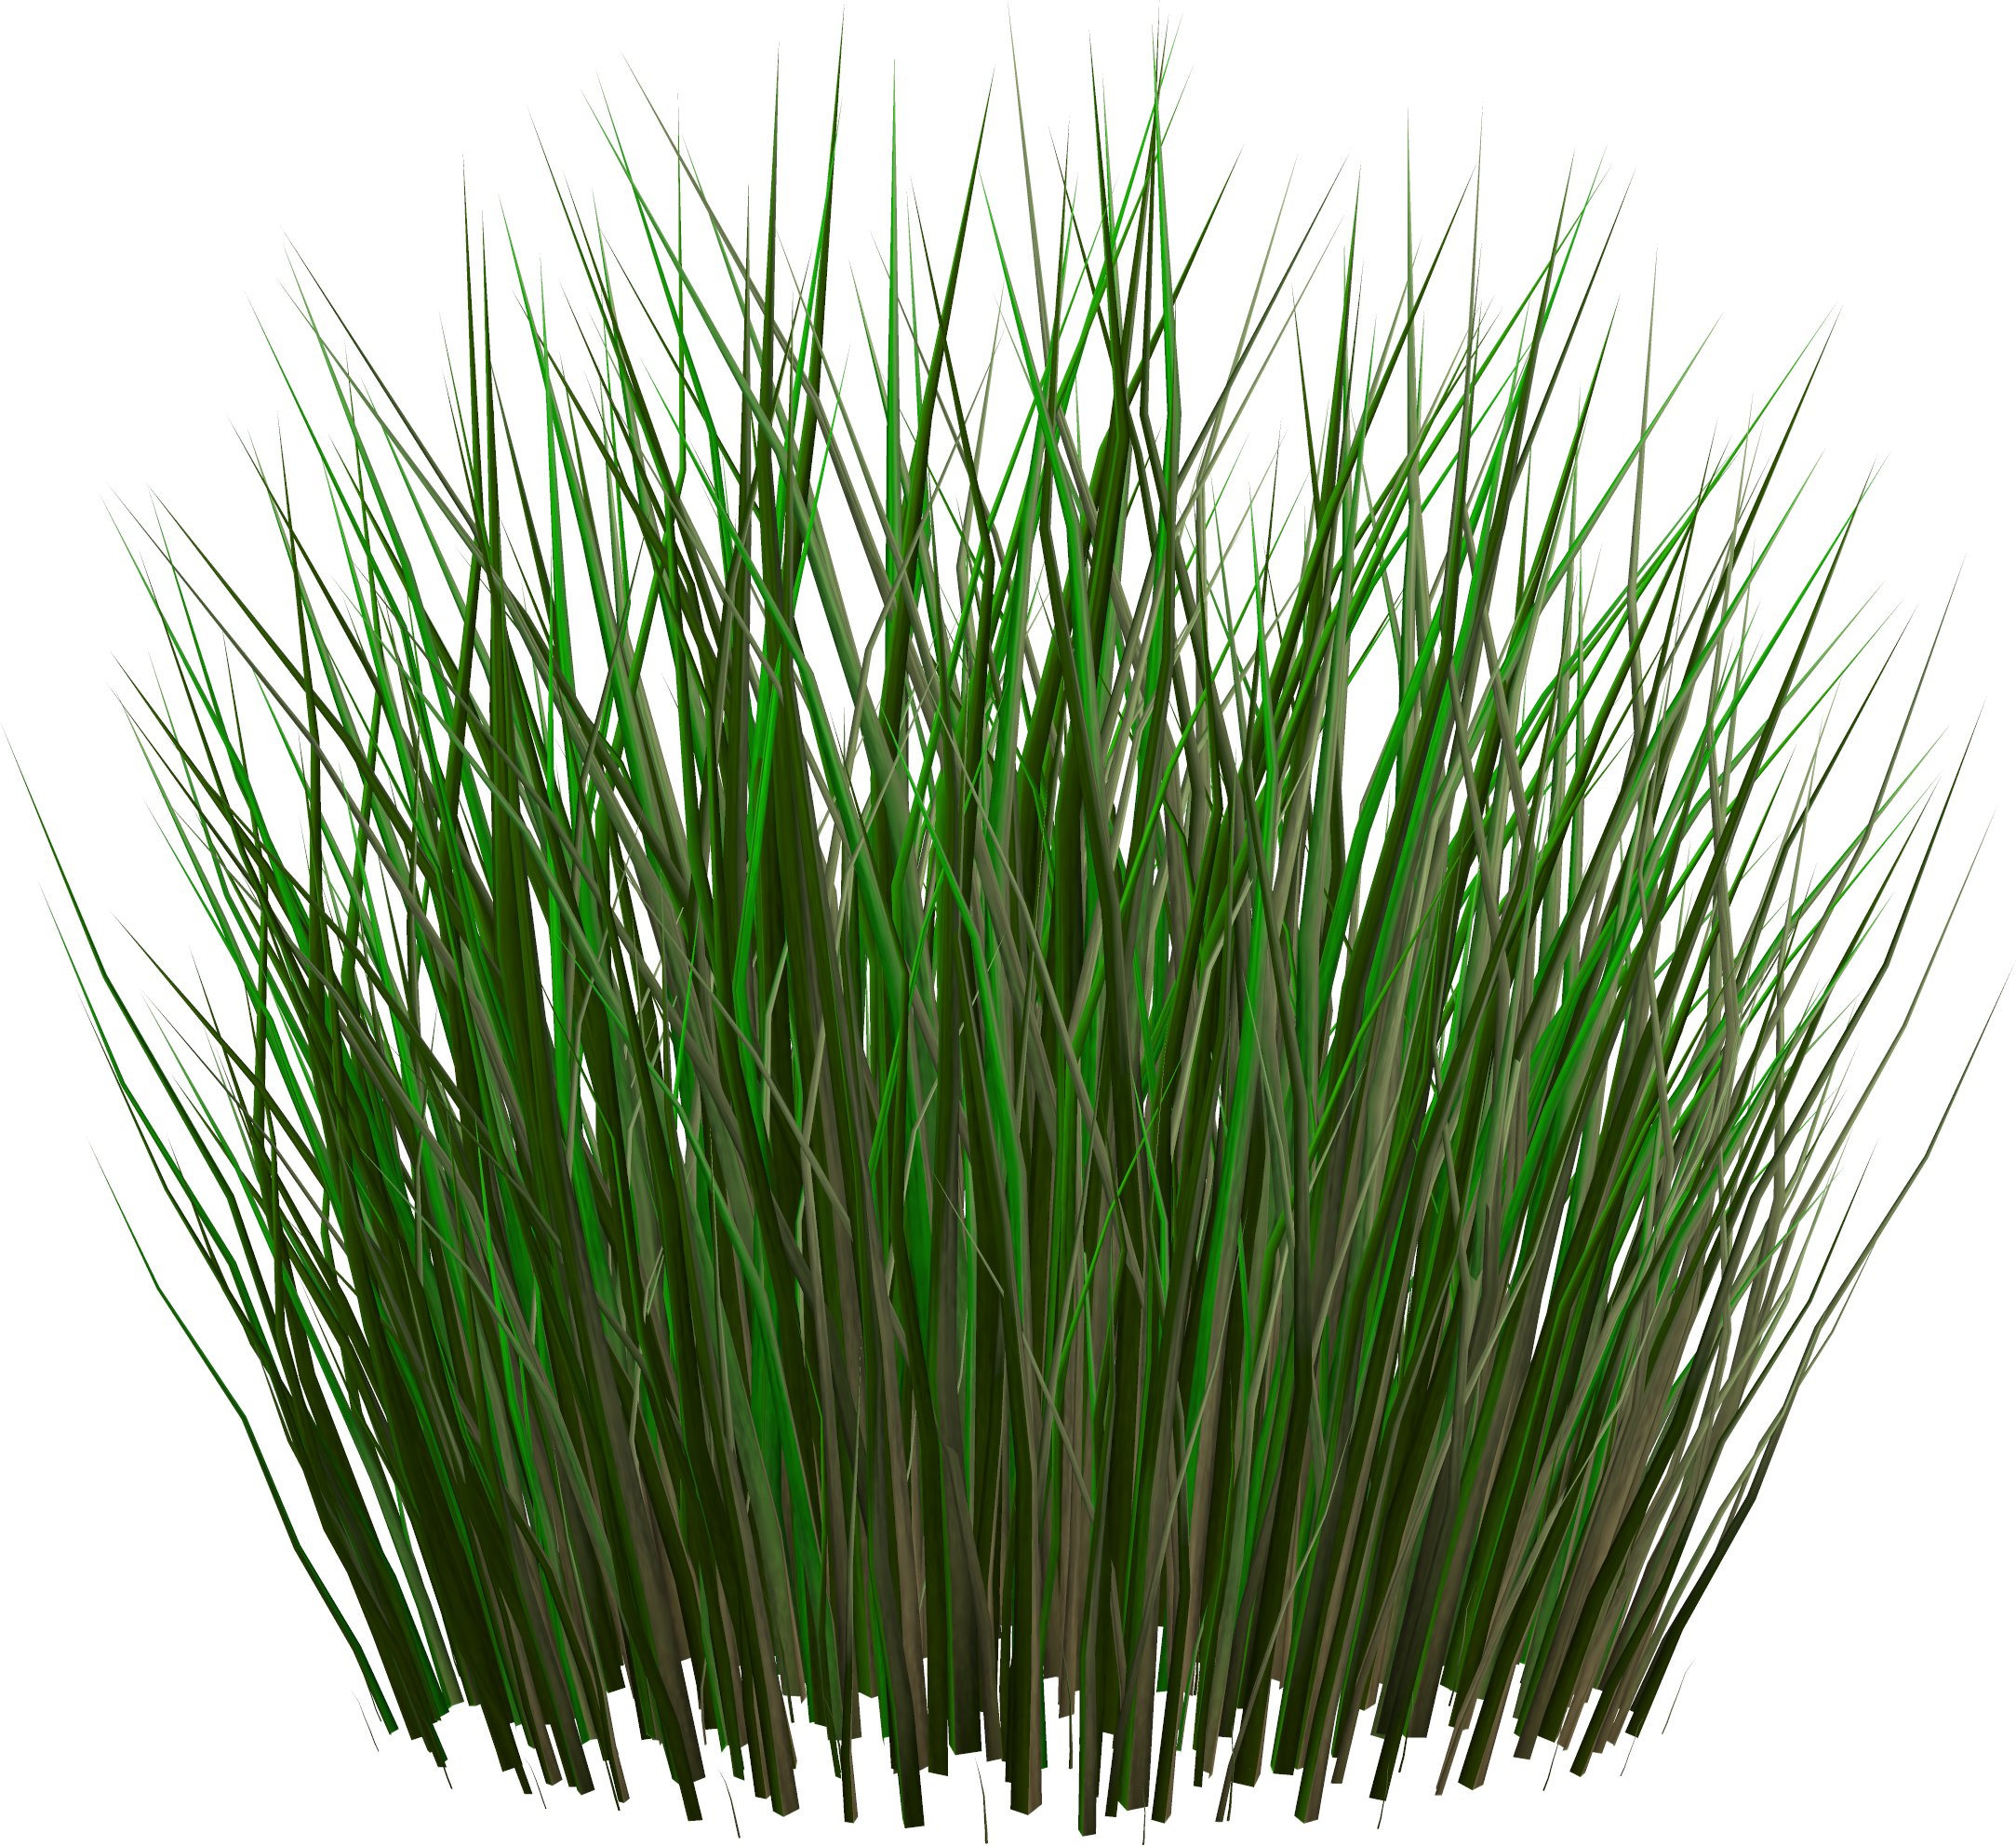 Tall Grass PNG images, pictures